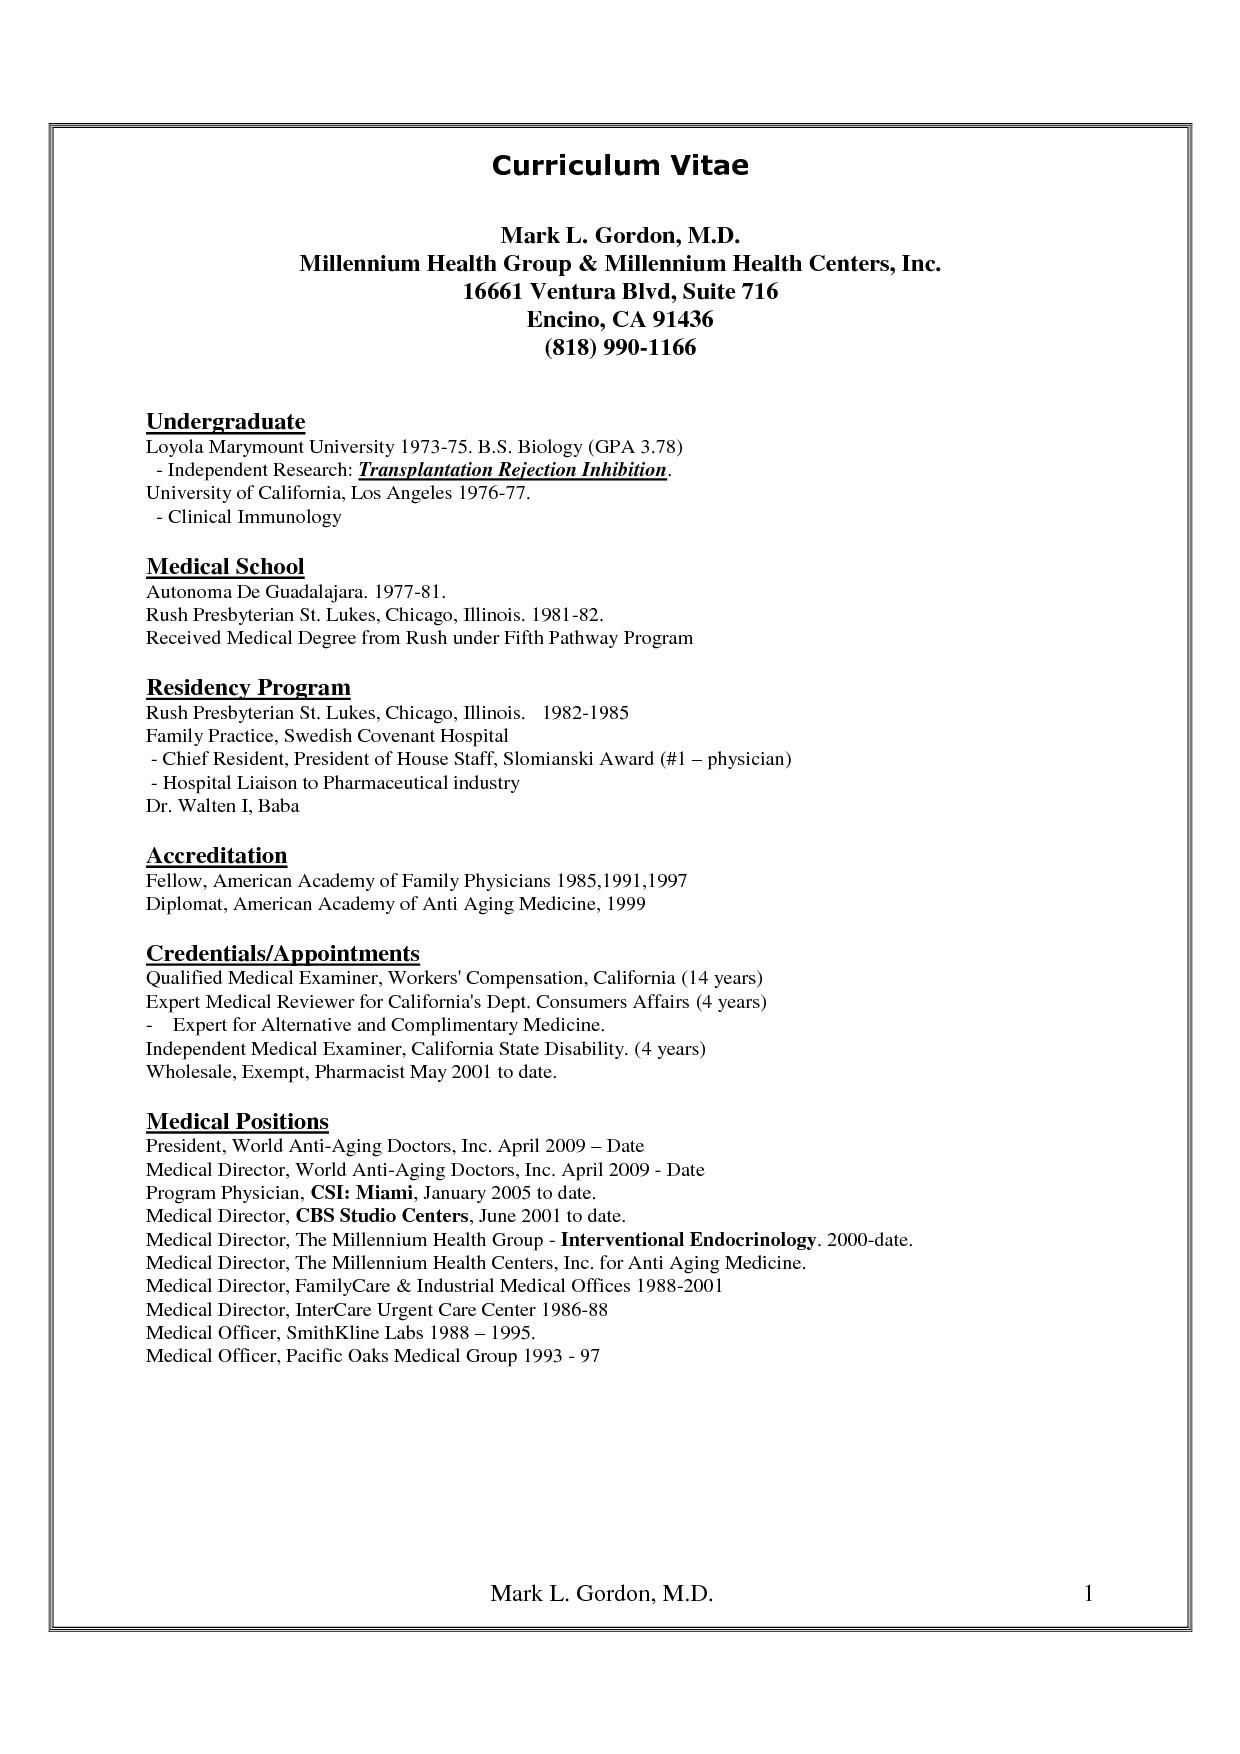 Cv Template for Physicians Cv Medical Cv Template